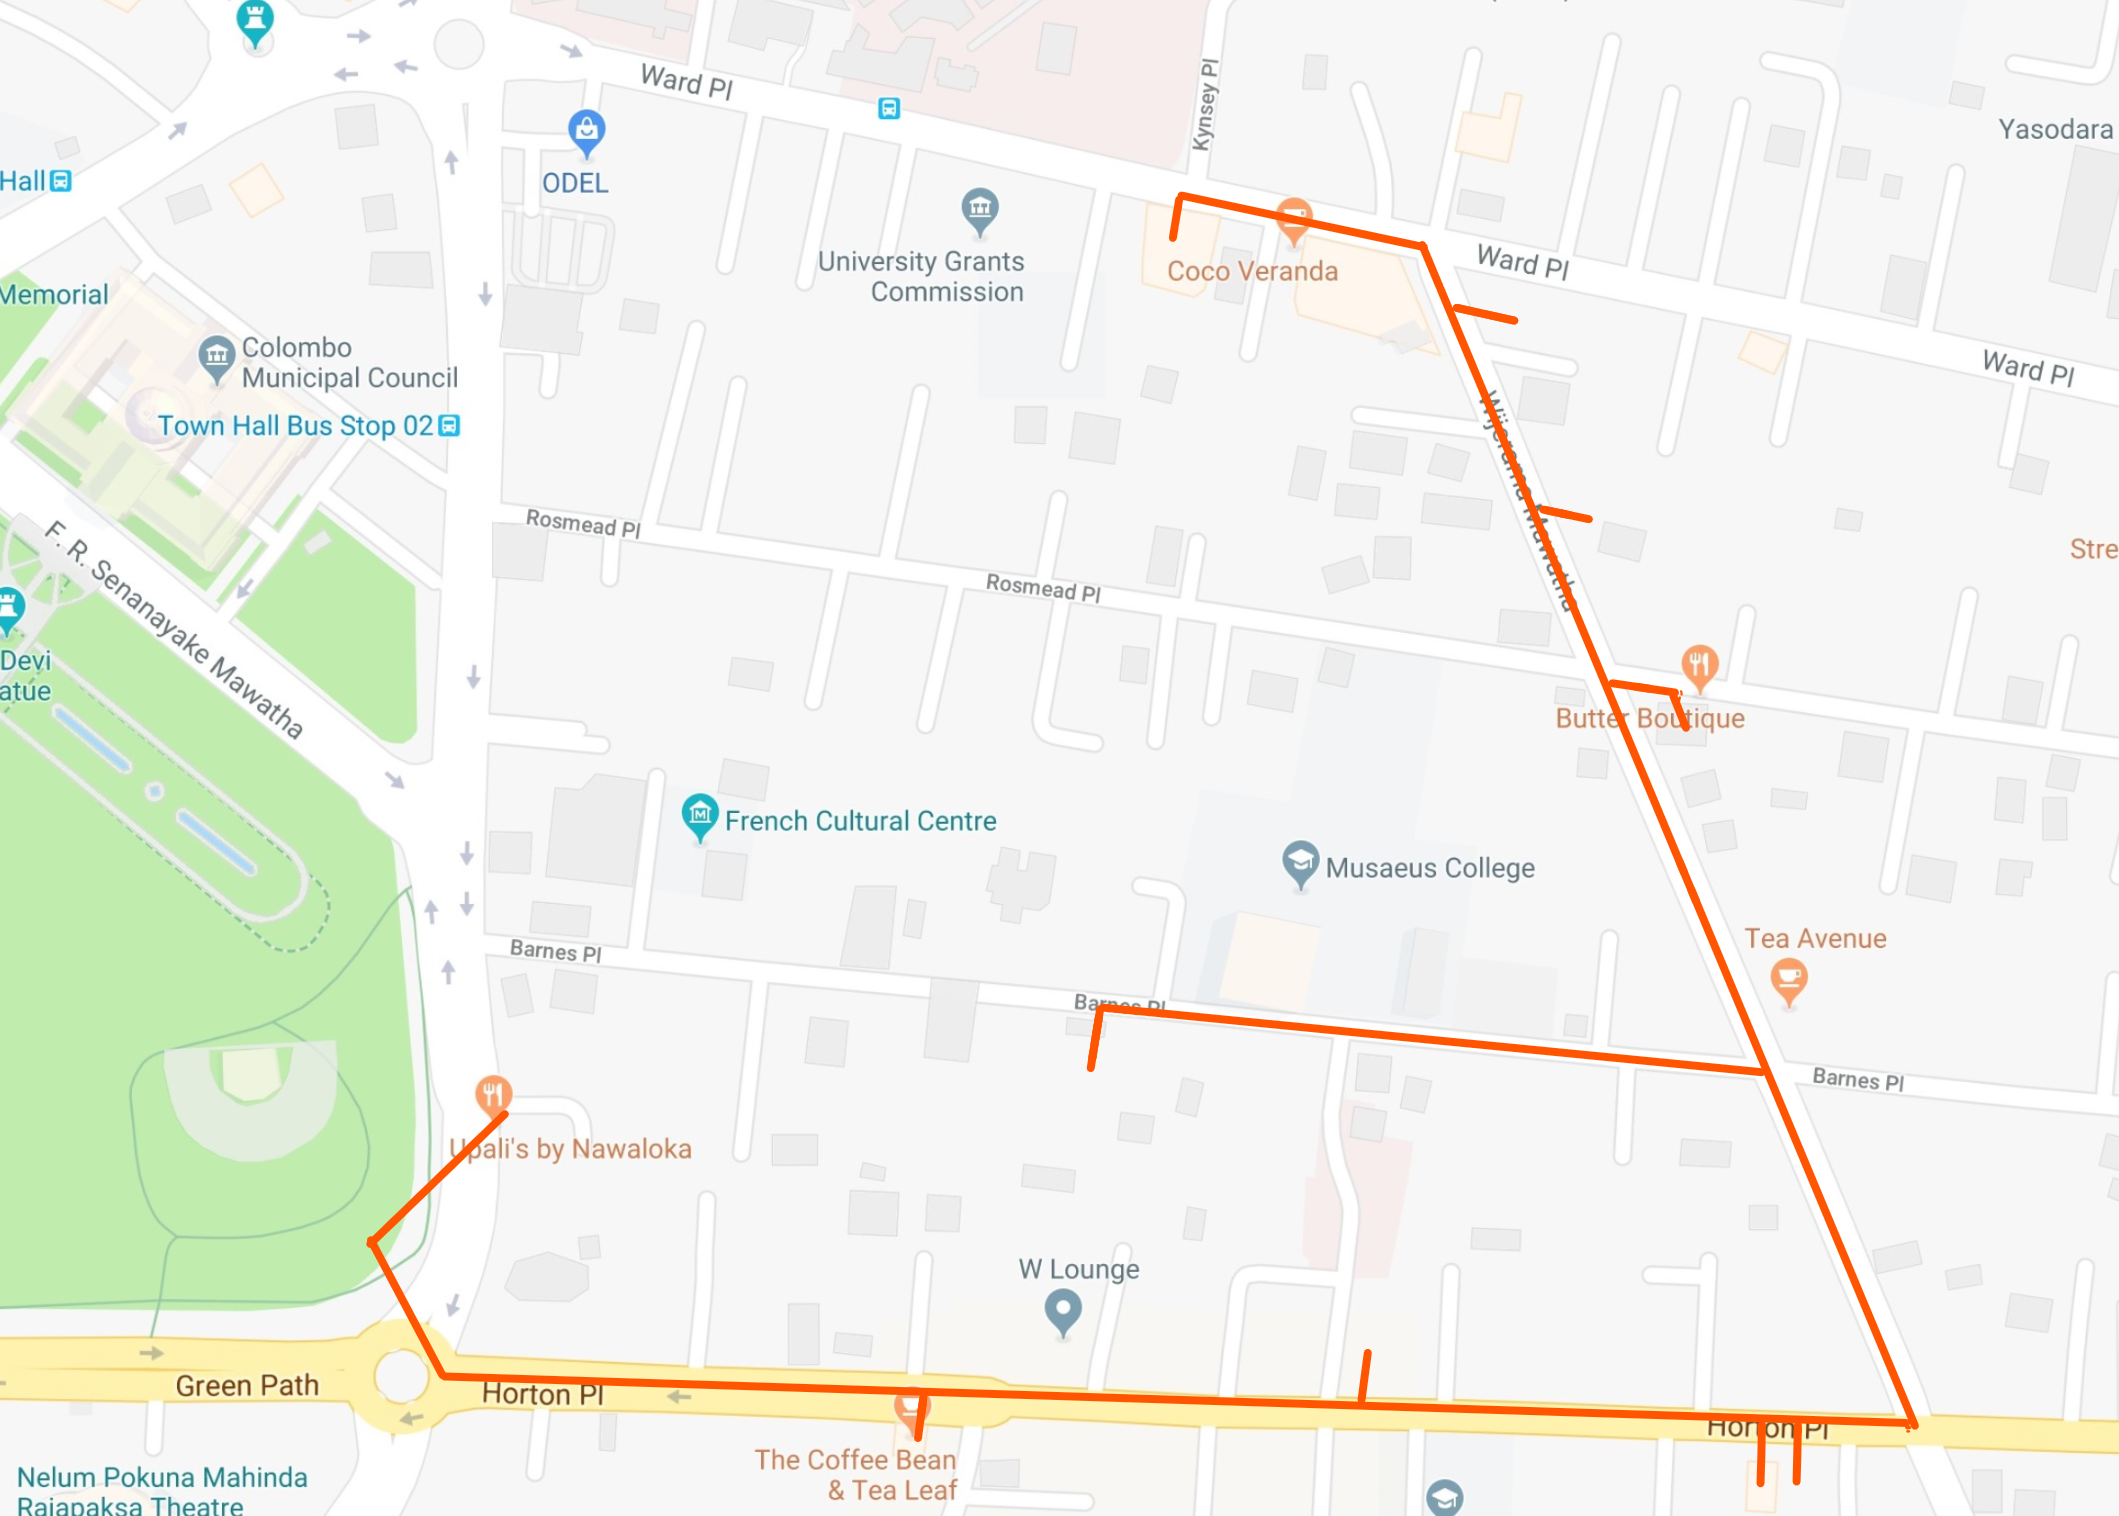 Hand drawn itinerary of Colombo shopping guide for the Viharamahadevi Park East district on © Google Maps